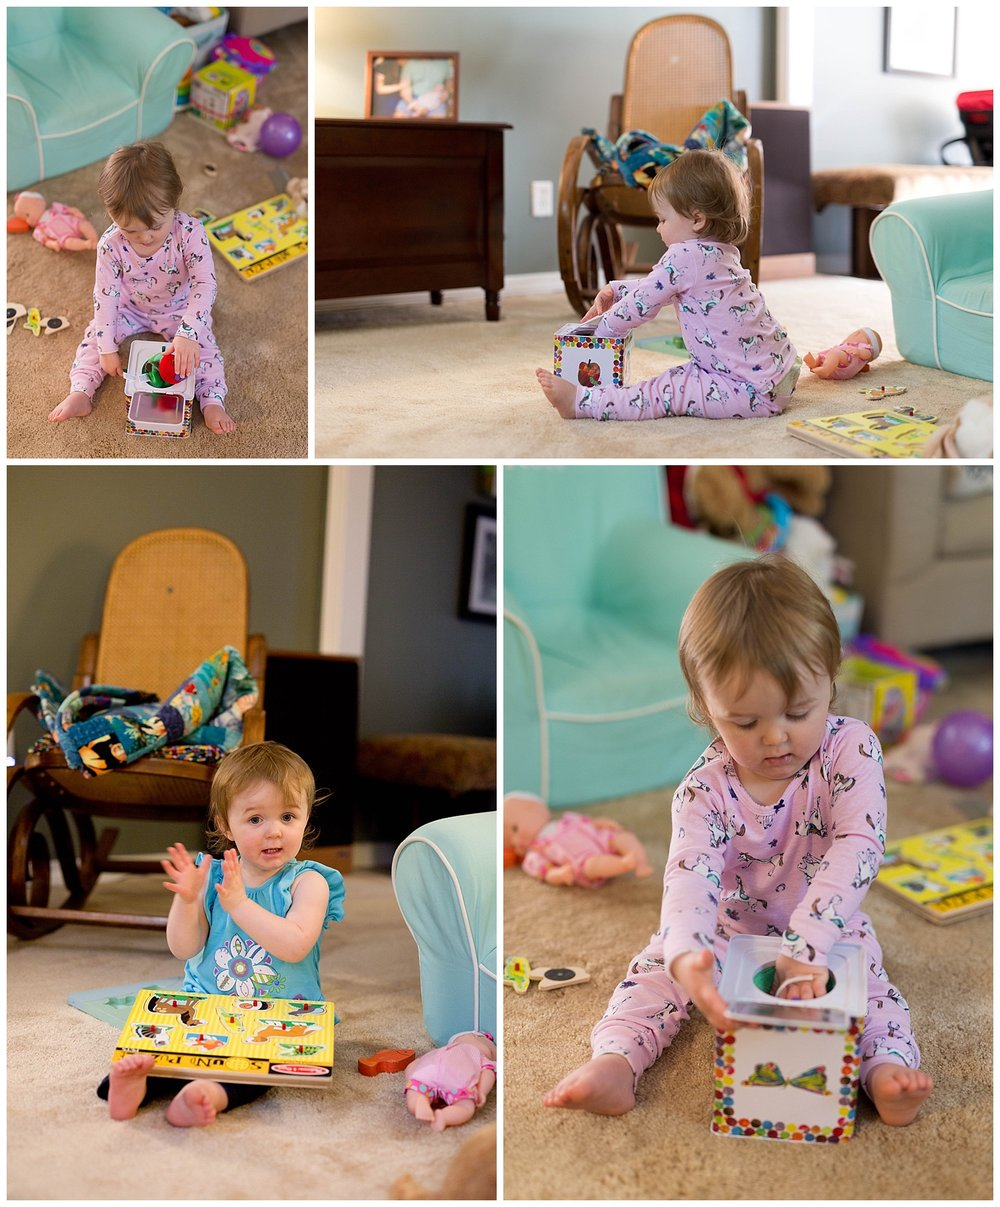 toddler girl playing with jack-in-the-box and puzzle